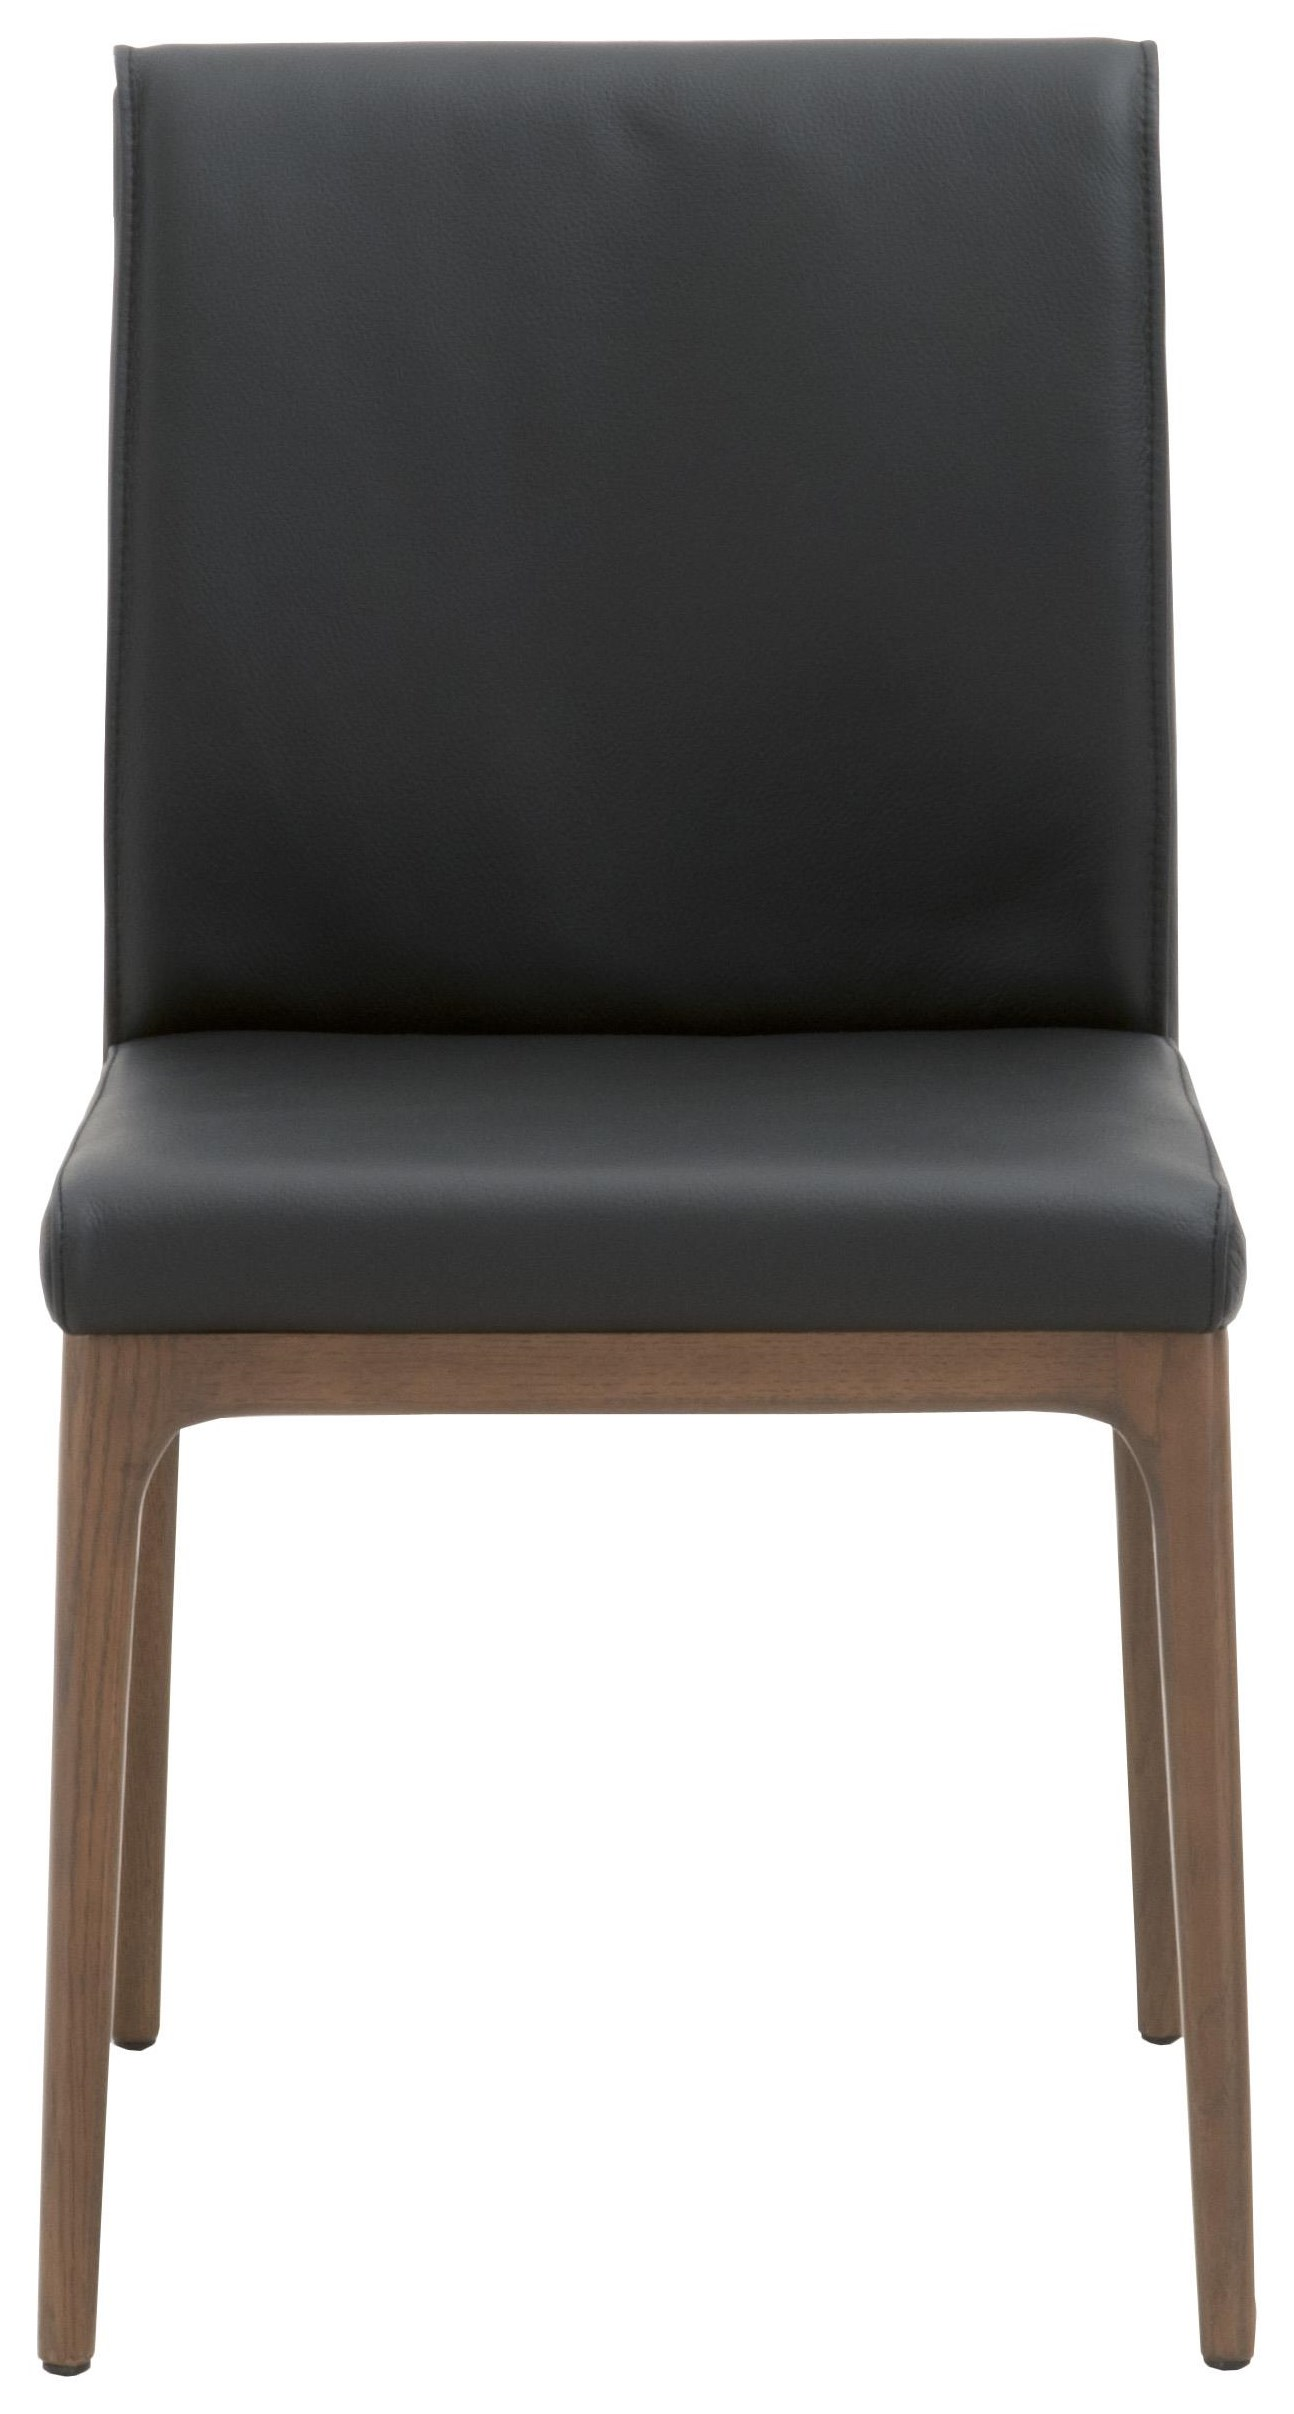 Alex Dining Side Chair by Essentials for Living at C. S. Wo & Sons California